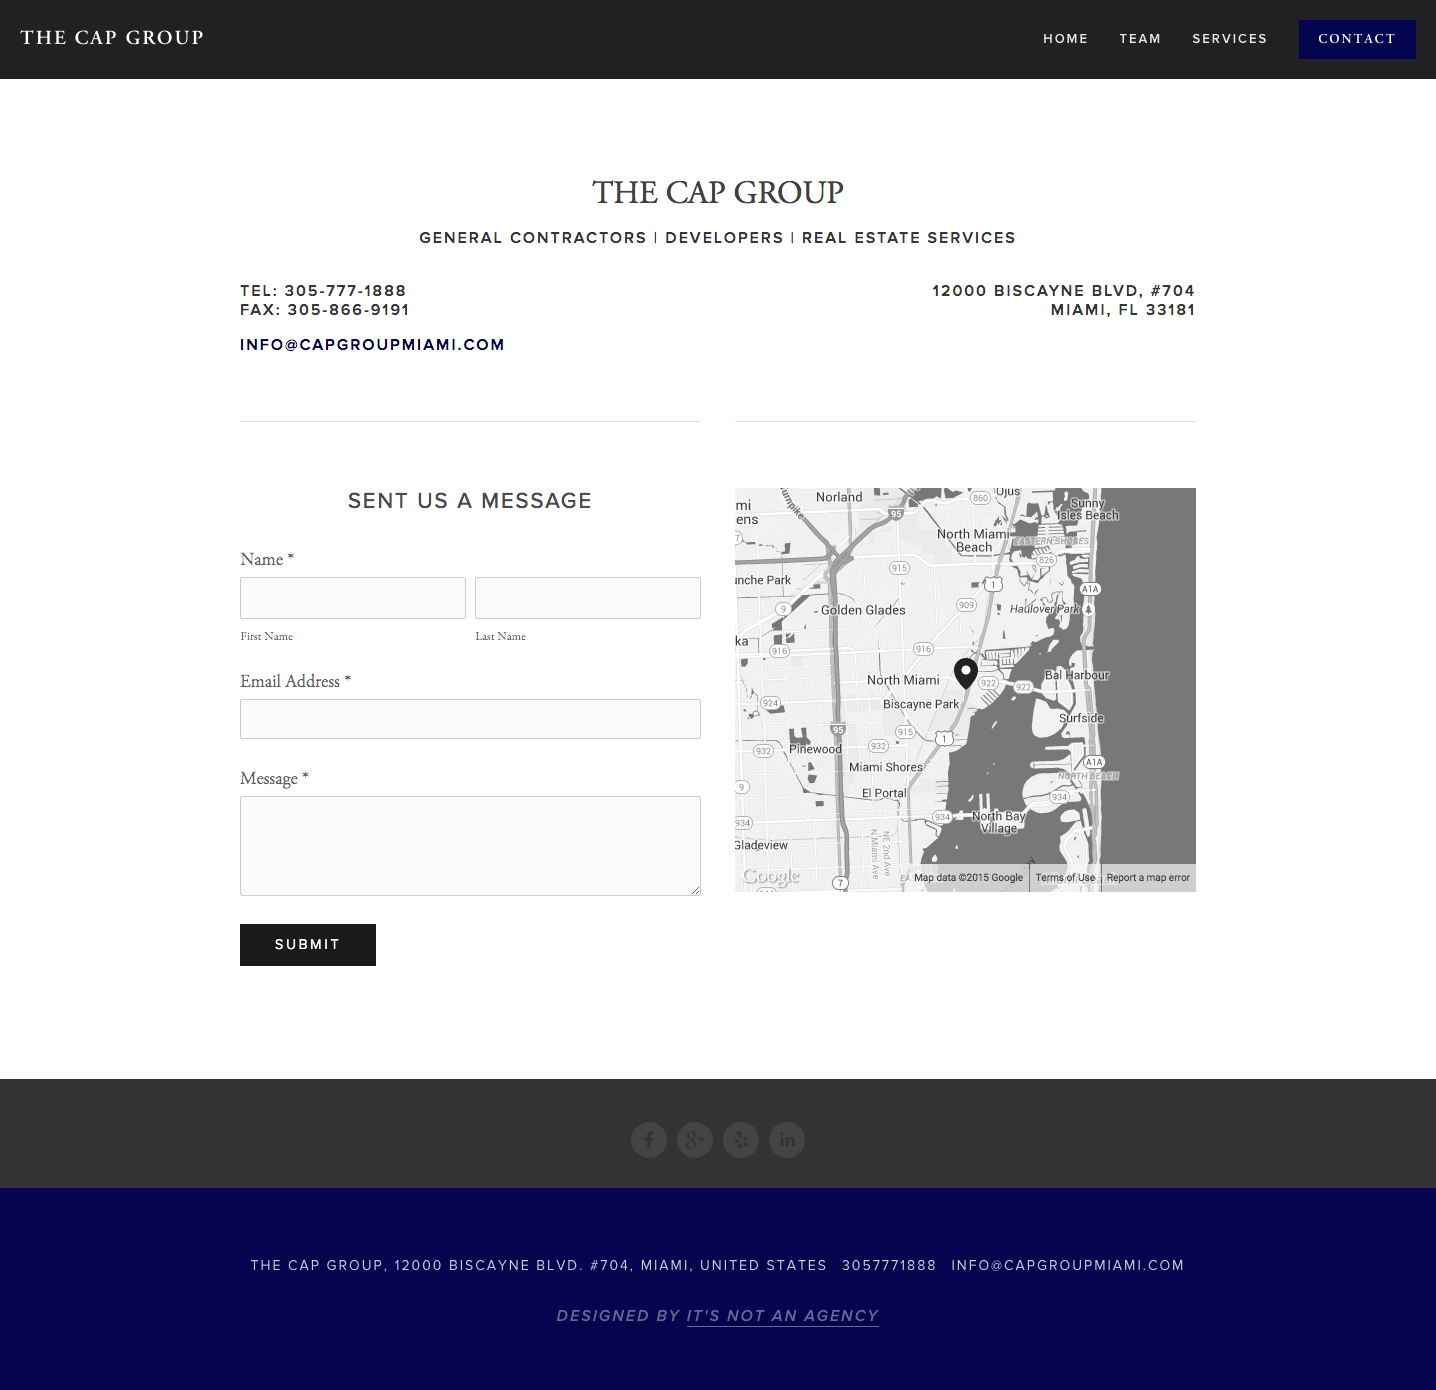 Commercial Website_The Cap Group2.png